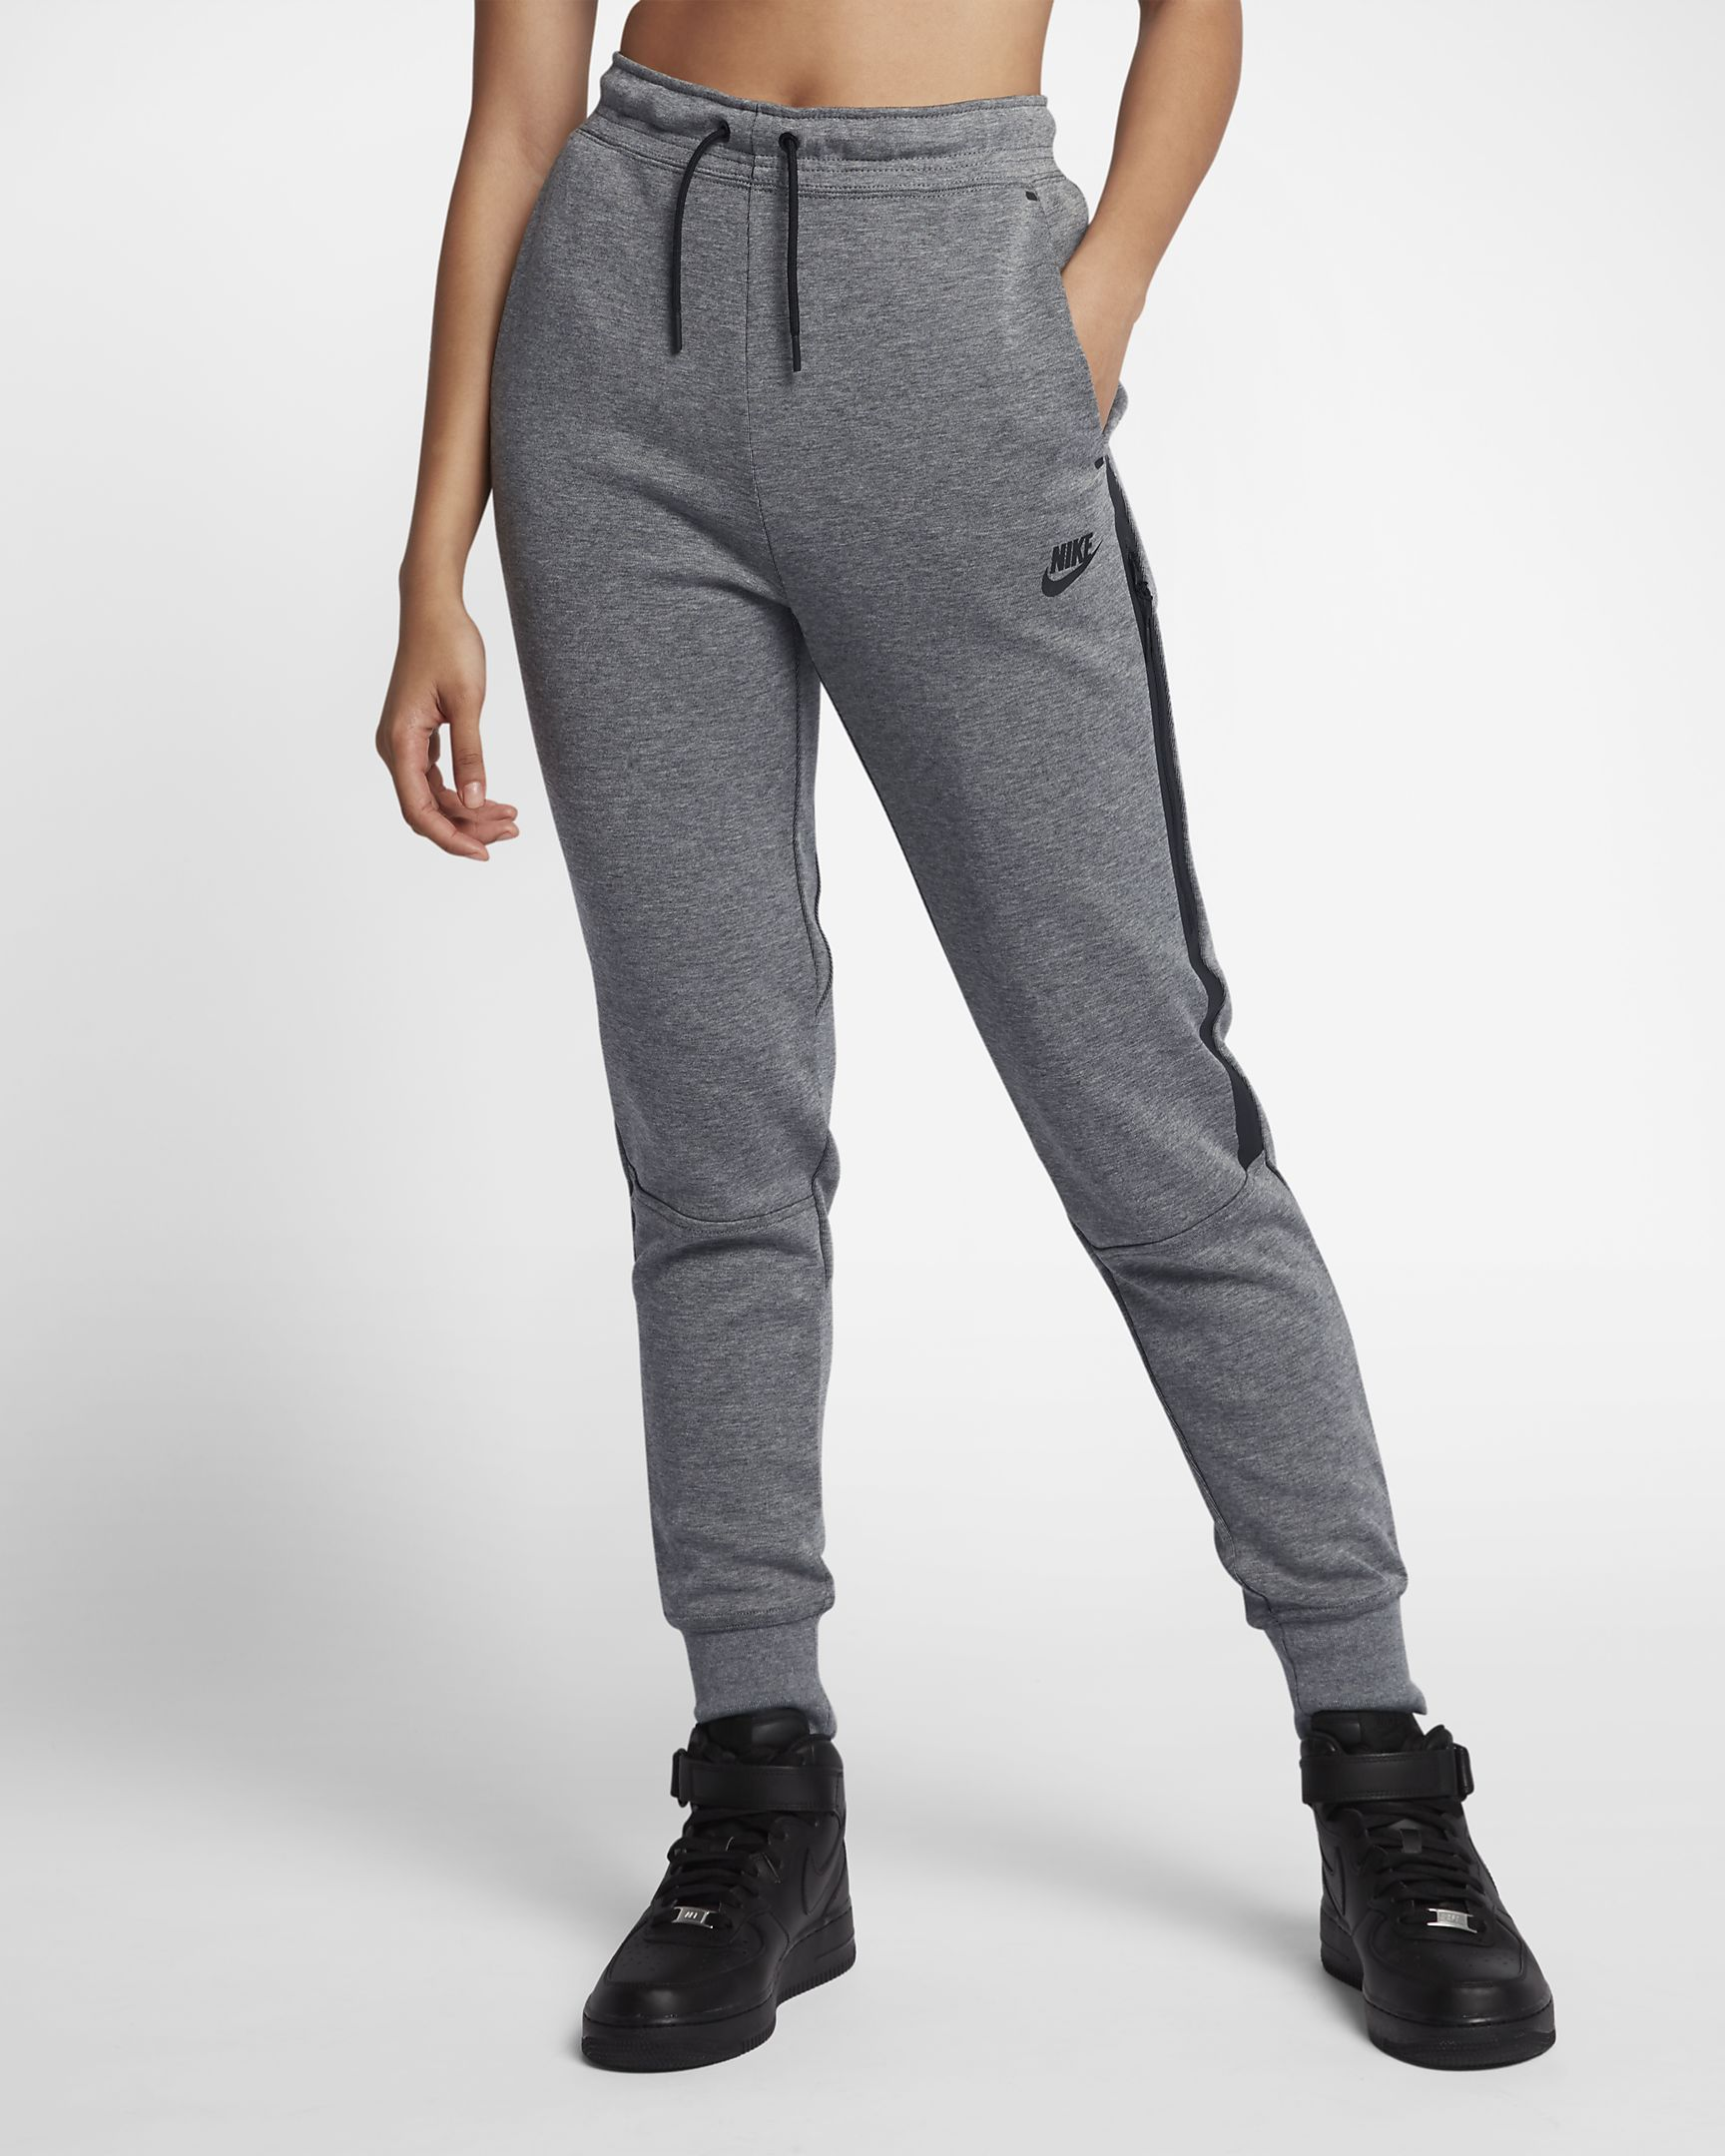 Nike Sportswear Tech Fleece Women's Pants Nike tech